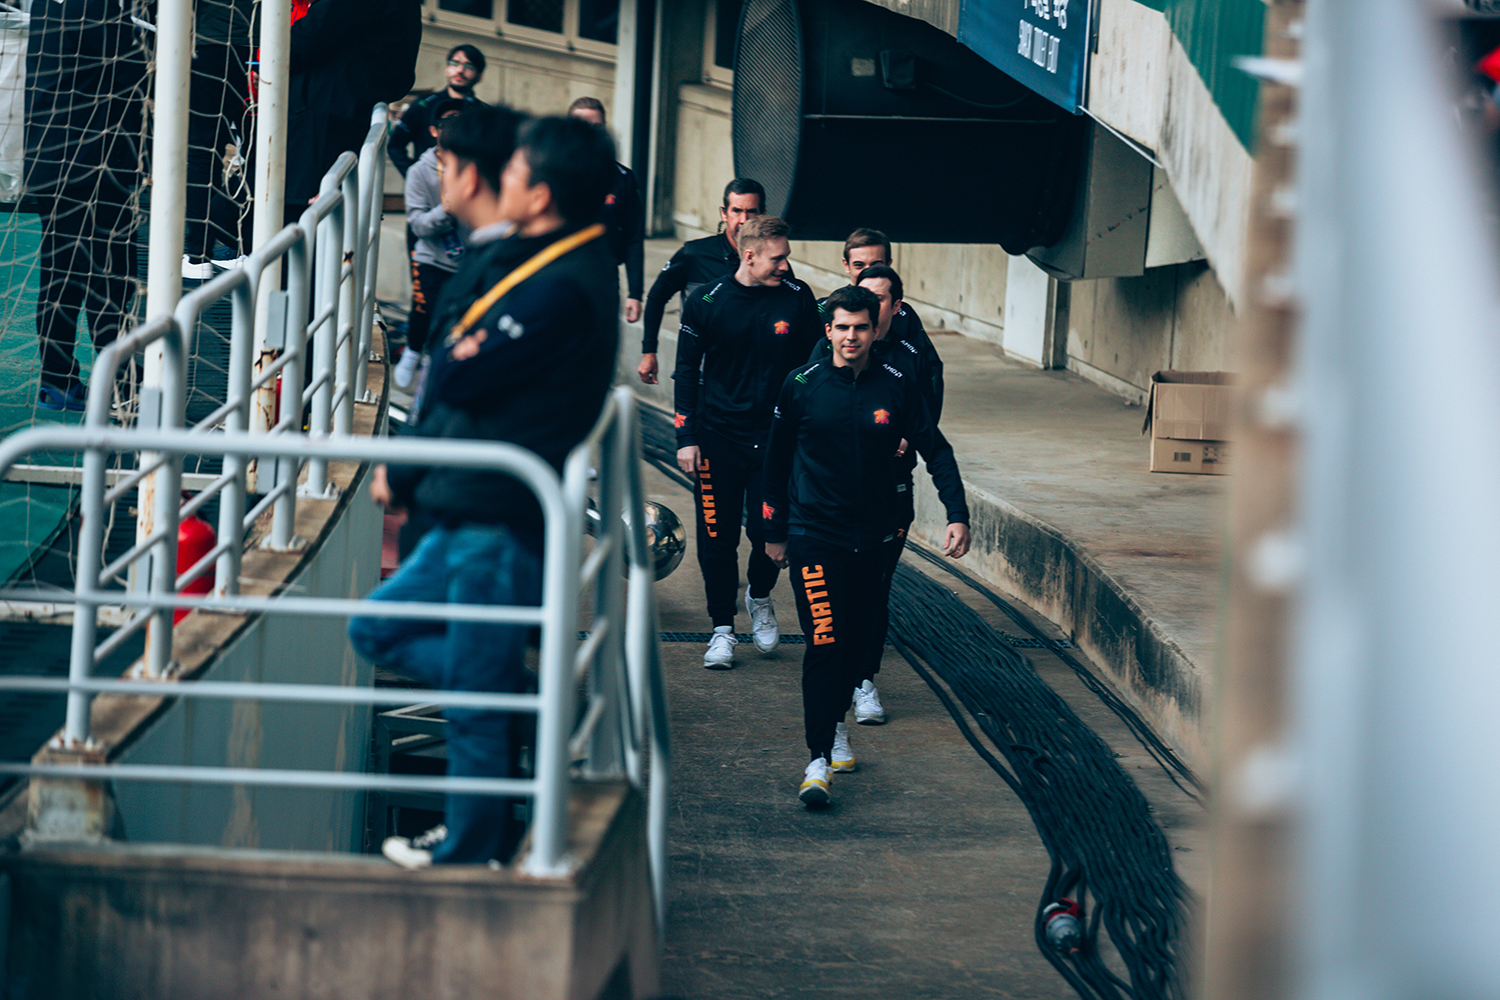 Team Fnatic entering stadium to face off with Invictus Gaming at League of Legends World Championship Finals to begin, sponsored by Mastercard on November 3, 2018 in Incheon, South Korea.  Photo by Timo Verdeil/ESPAT Media for Mastercard